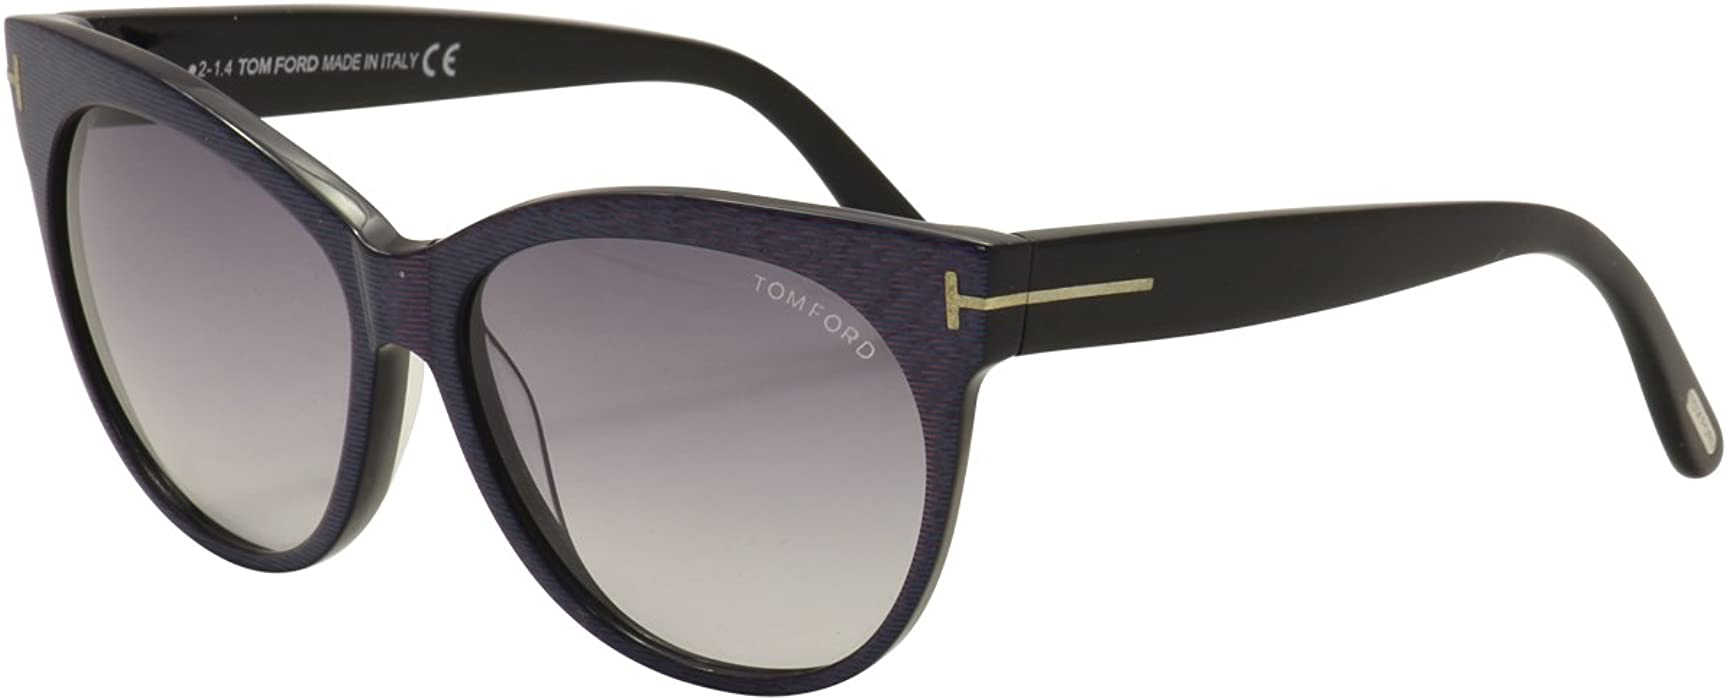 96821792761a Tom Ford Women's 0330 Striped Violet Frame/Gradient Smoke Lens ...